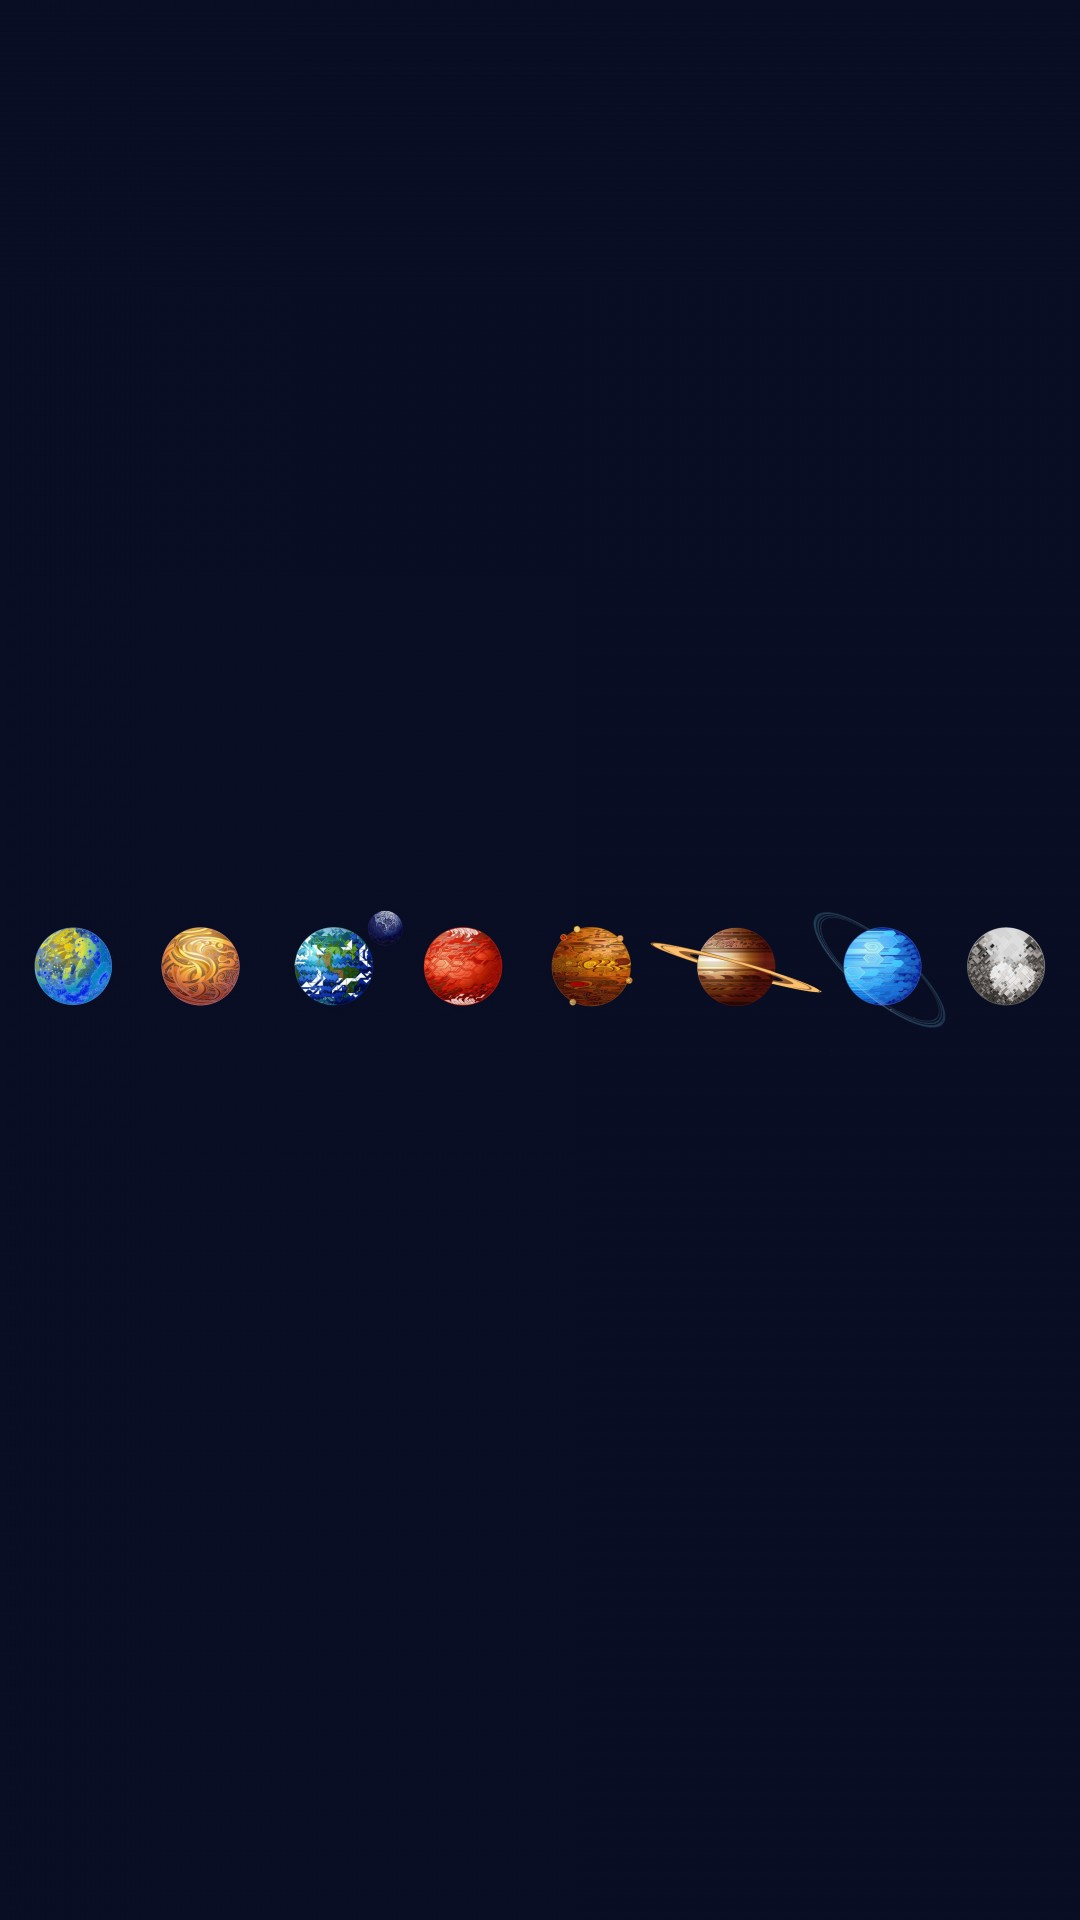 Solar System Wallpaper for Motorola Moto X